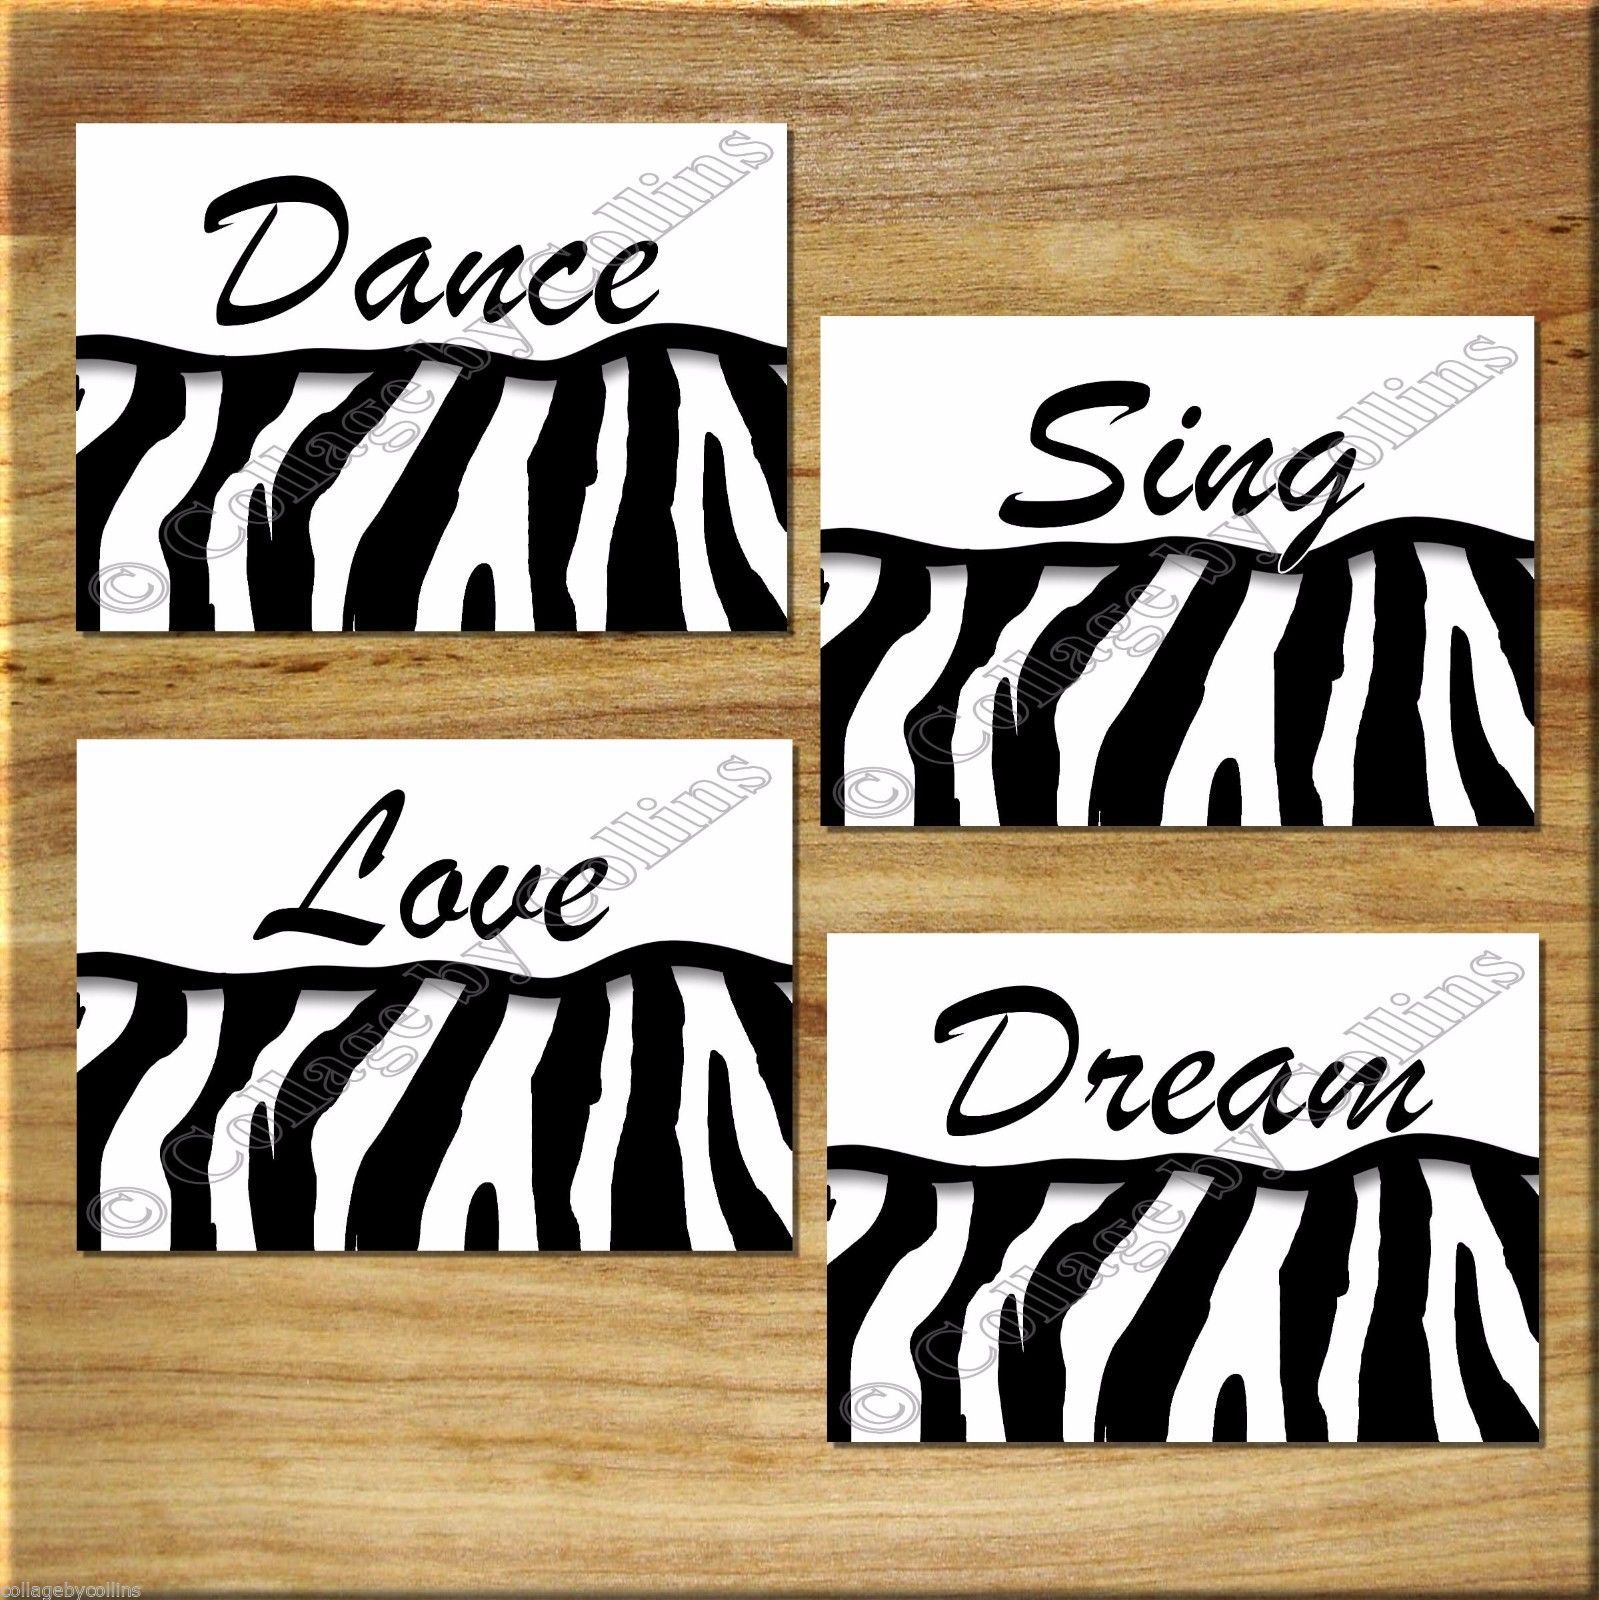 Primary image for ZEBRA Print Wall Art Decor Dance Sing Dream Love Quotes Girl Bedroom Inspiration